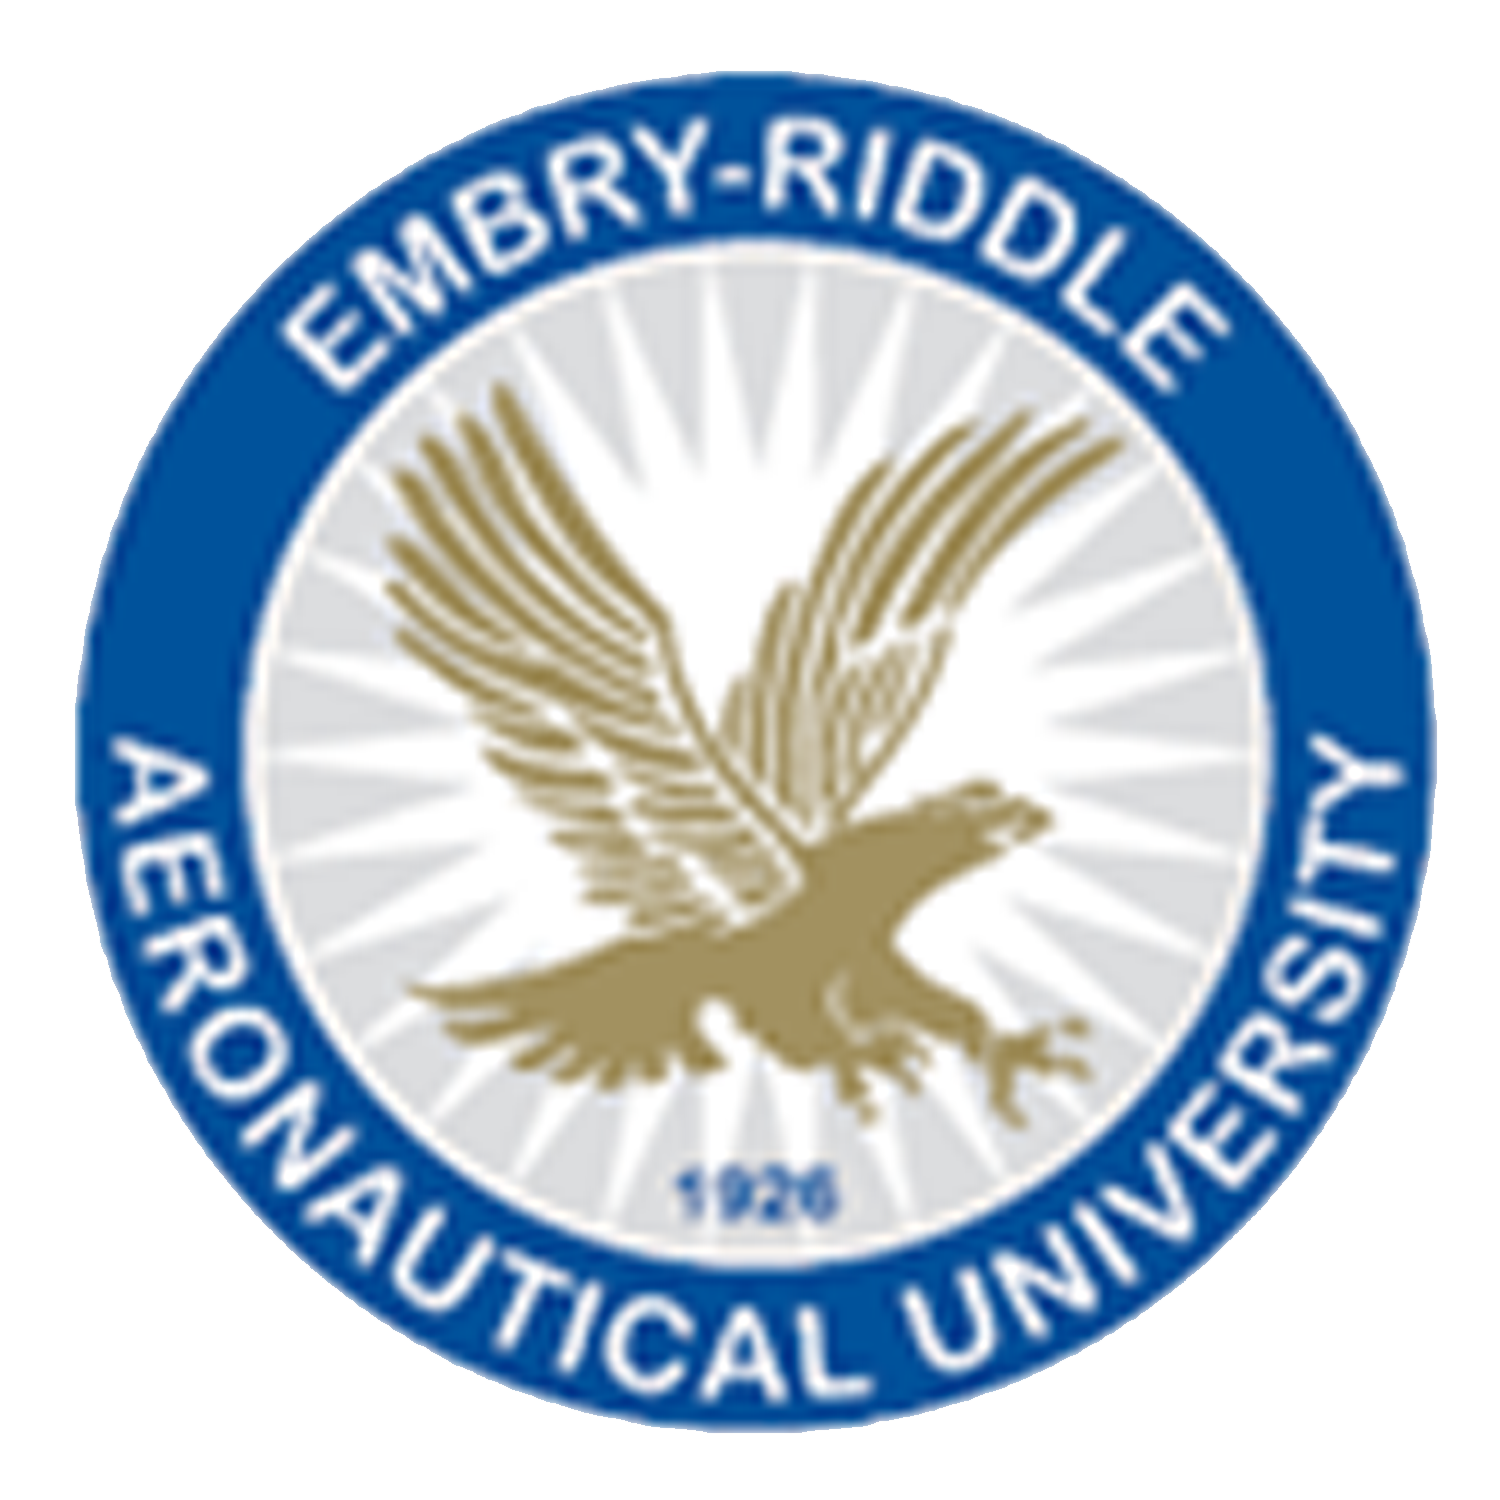 embry riddle research paper